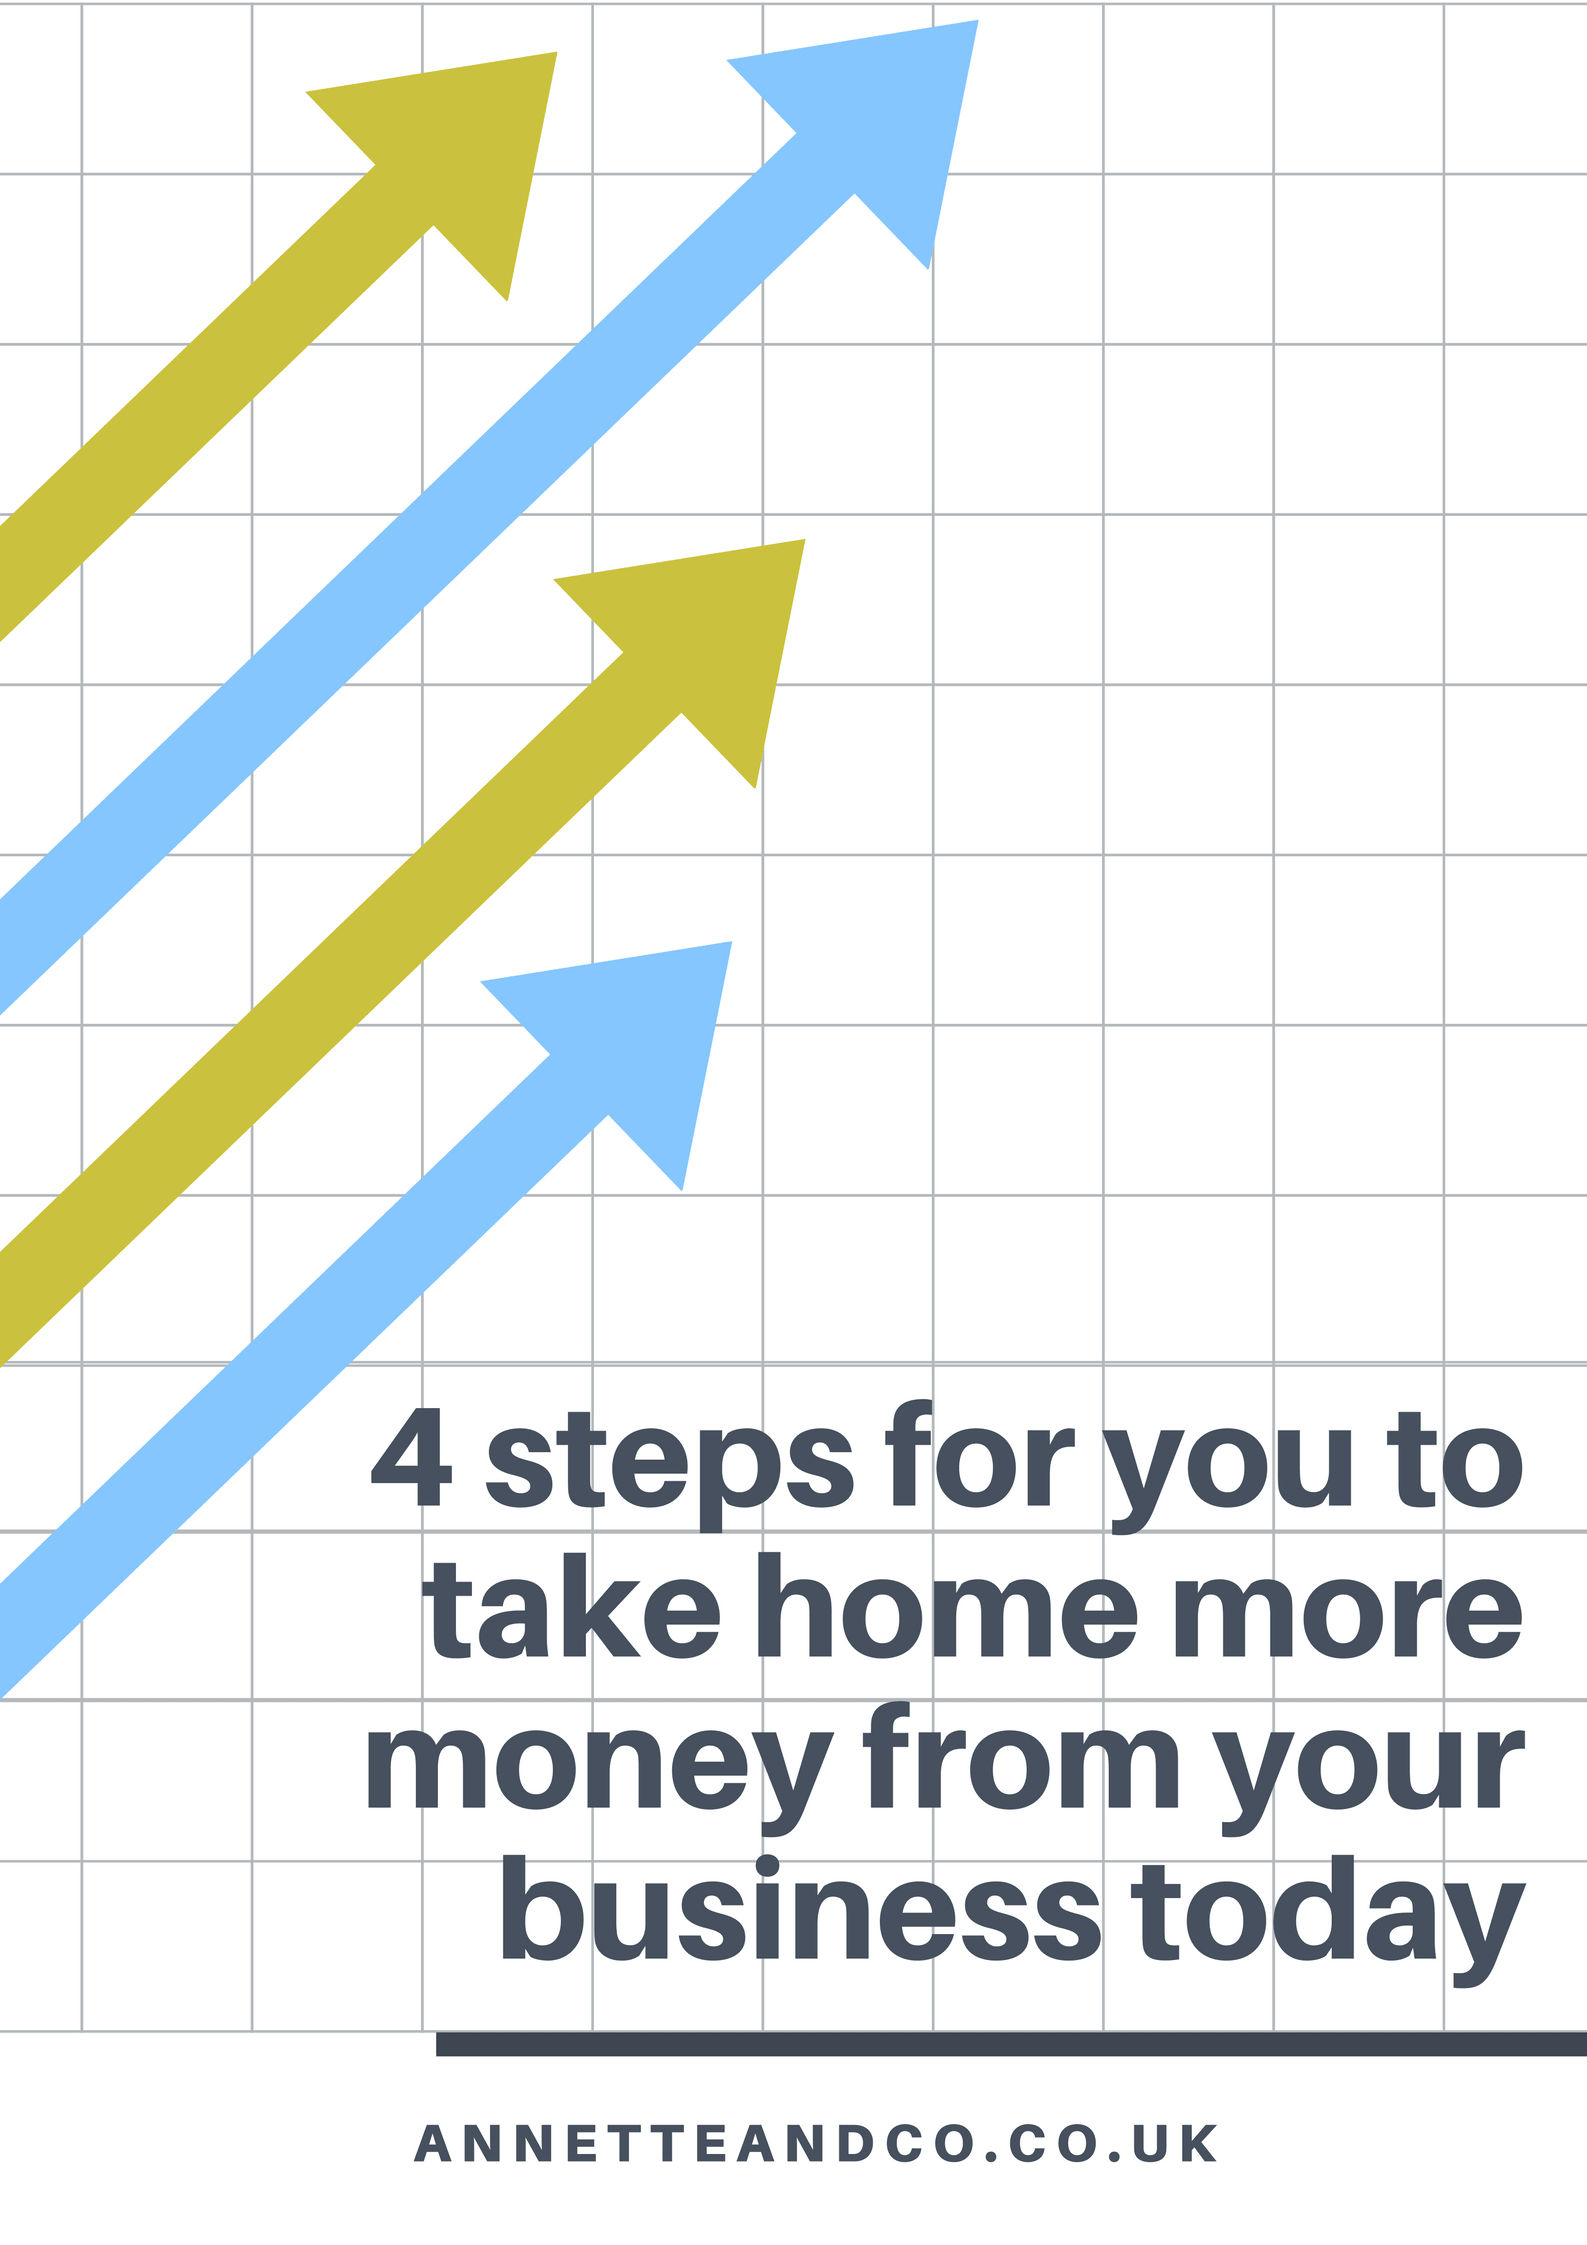 4 steps to take home more money from your business